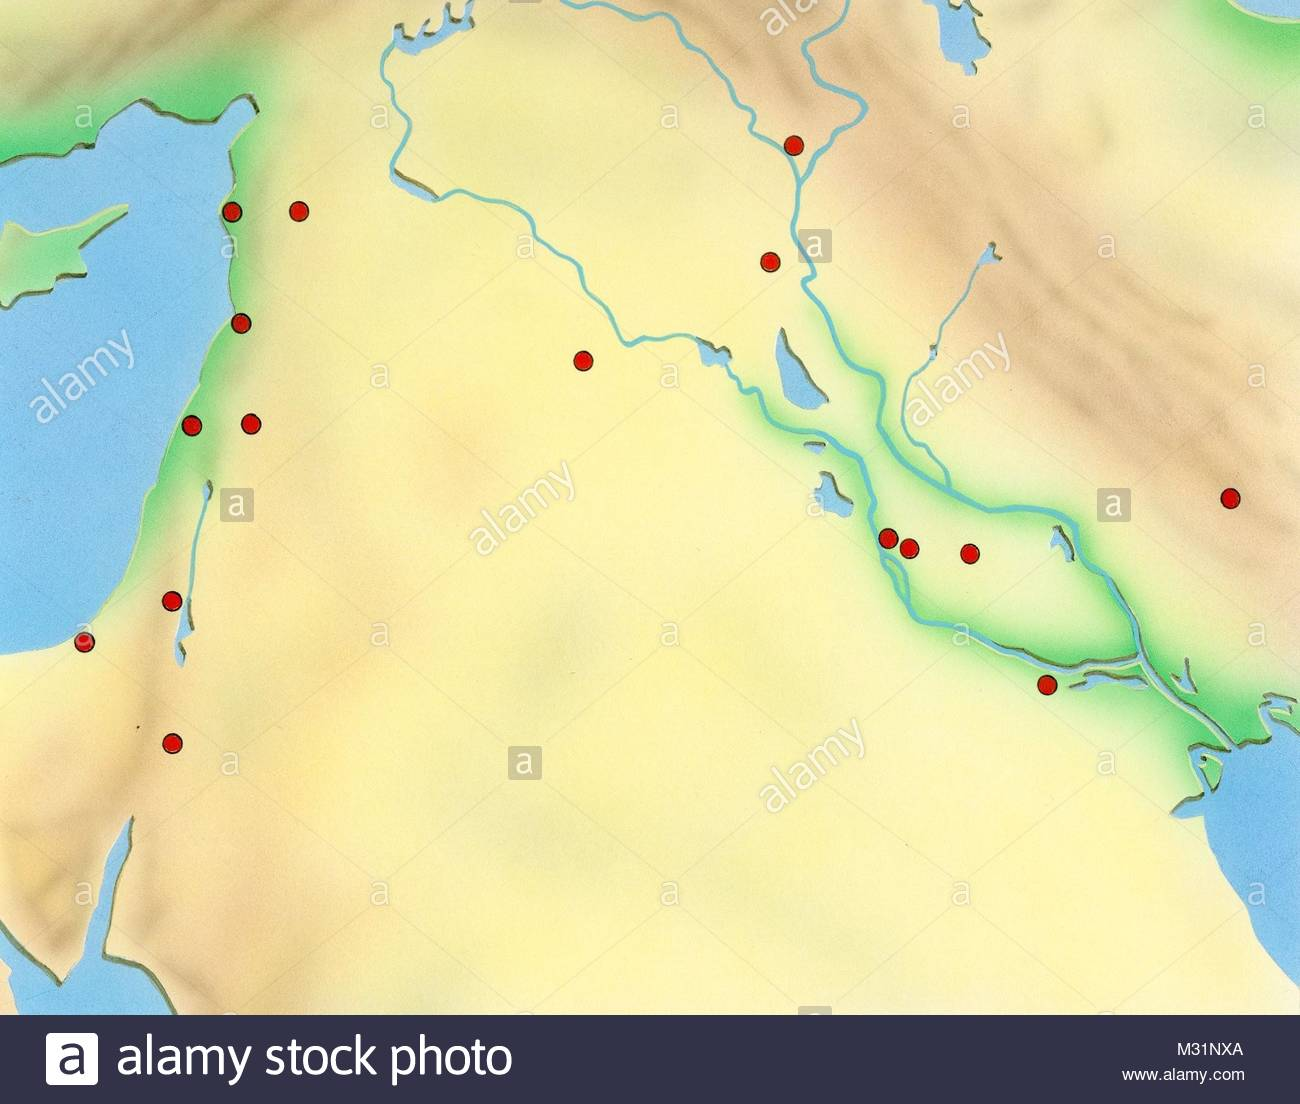 Map Middle East - Stock Image